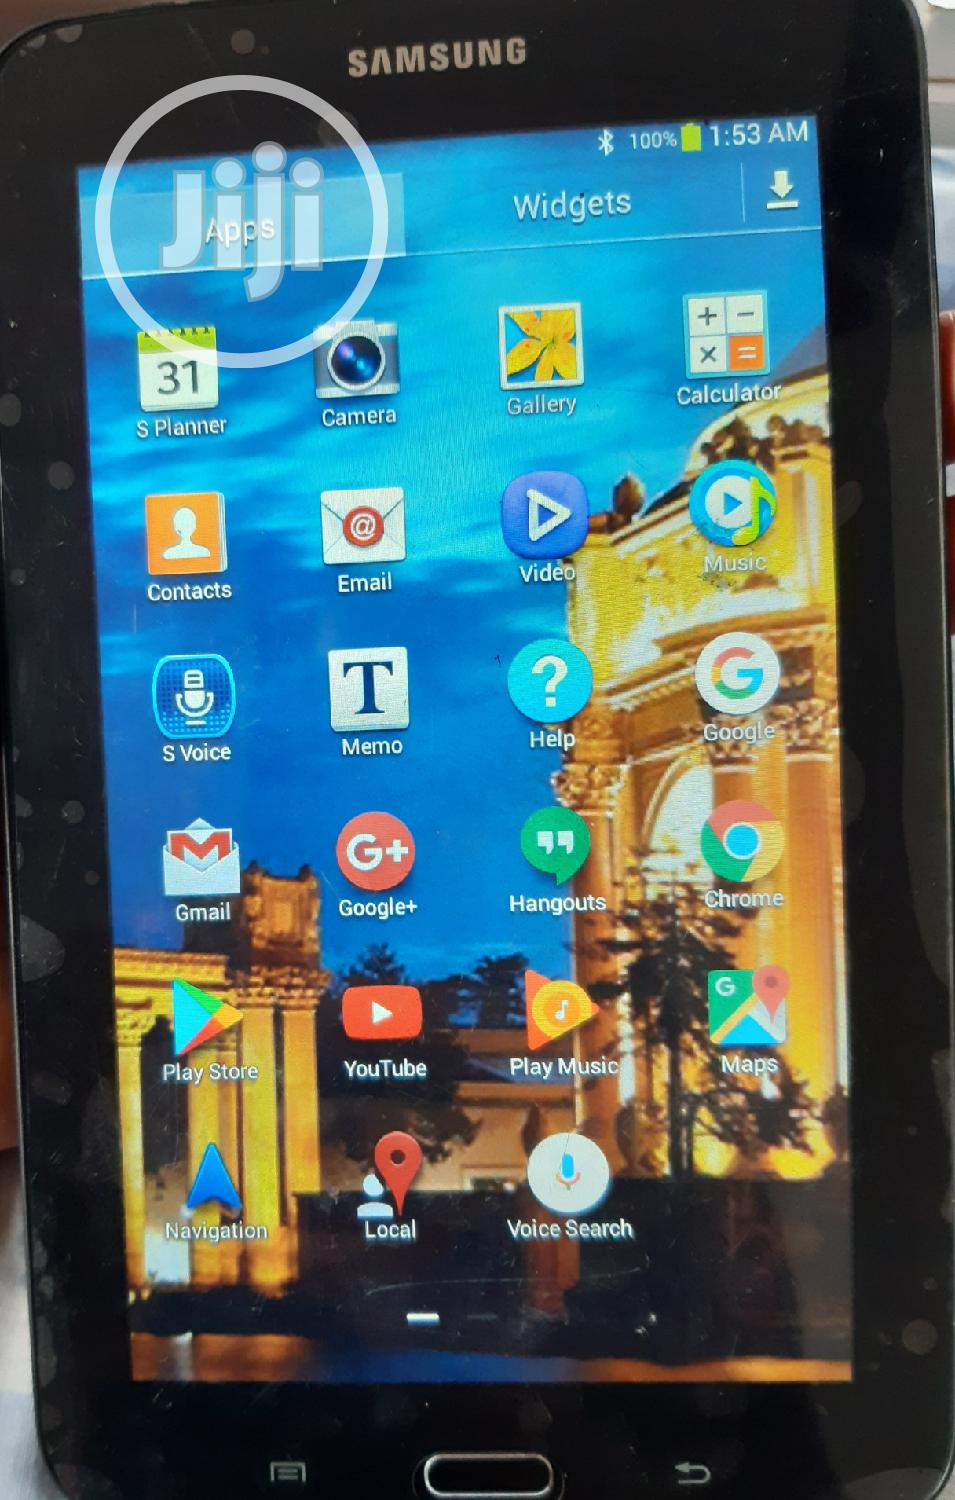 Samsung Galaxy Tab 3 Lite 7.0 8 GB Black | Tablets for sale in Owerri, Imo State, Nigeria